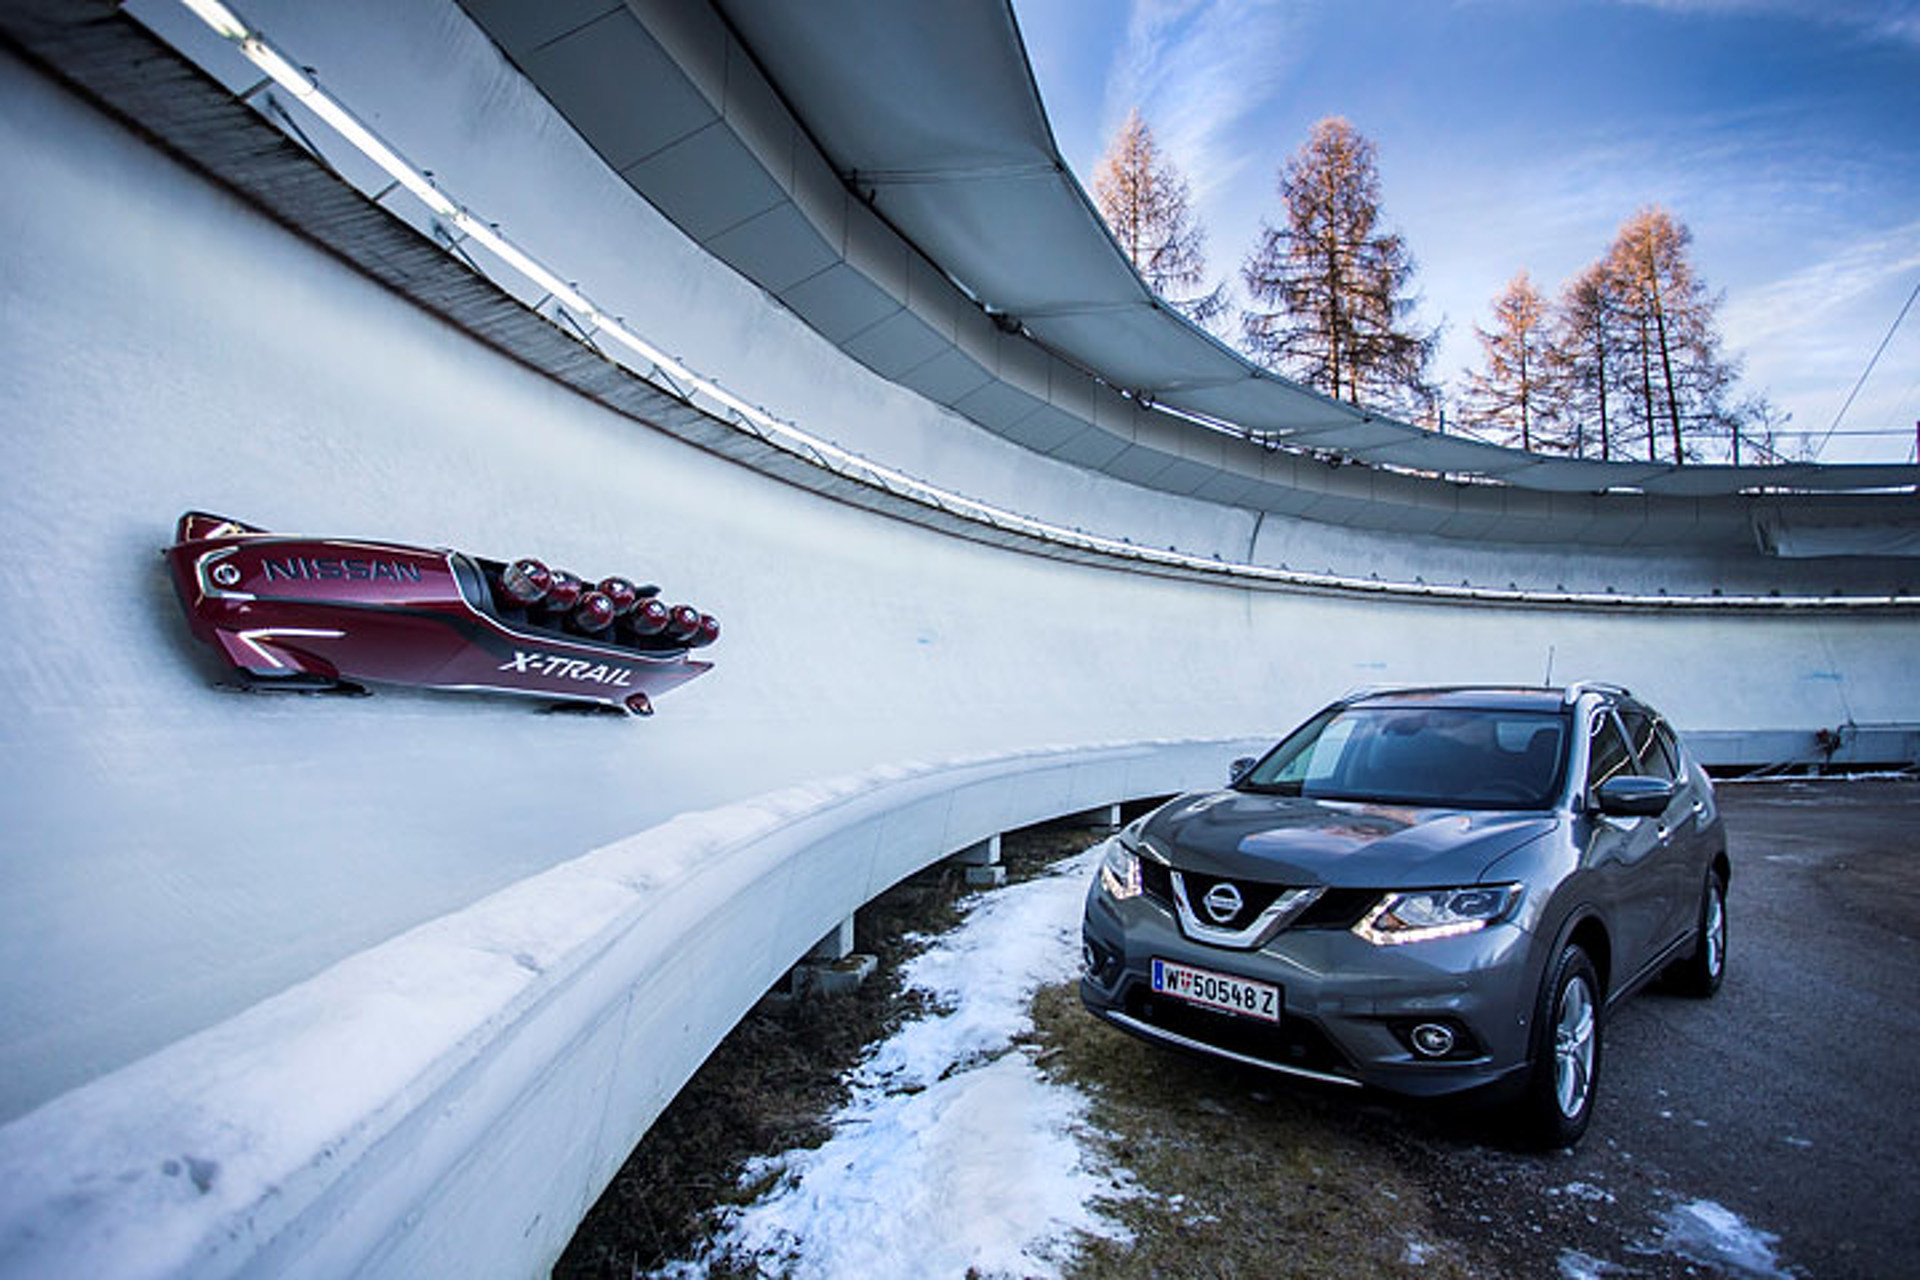 Nissan Has Built the World's First Seven-Seat Bobsleigh